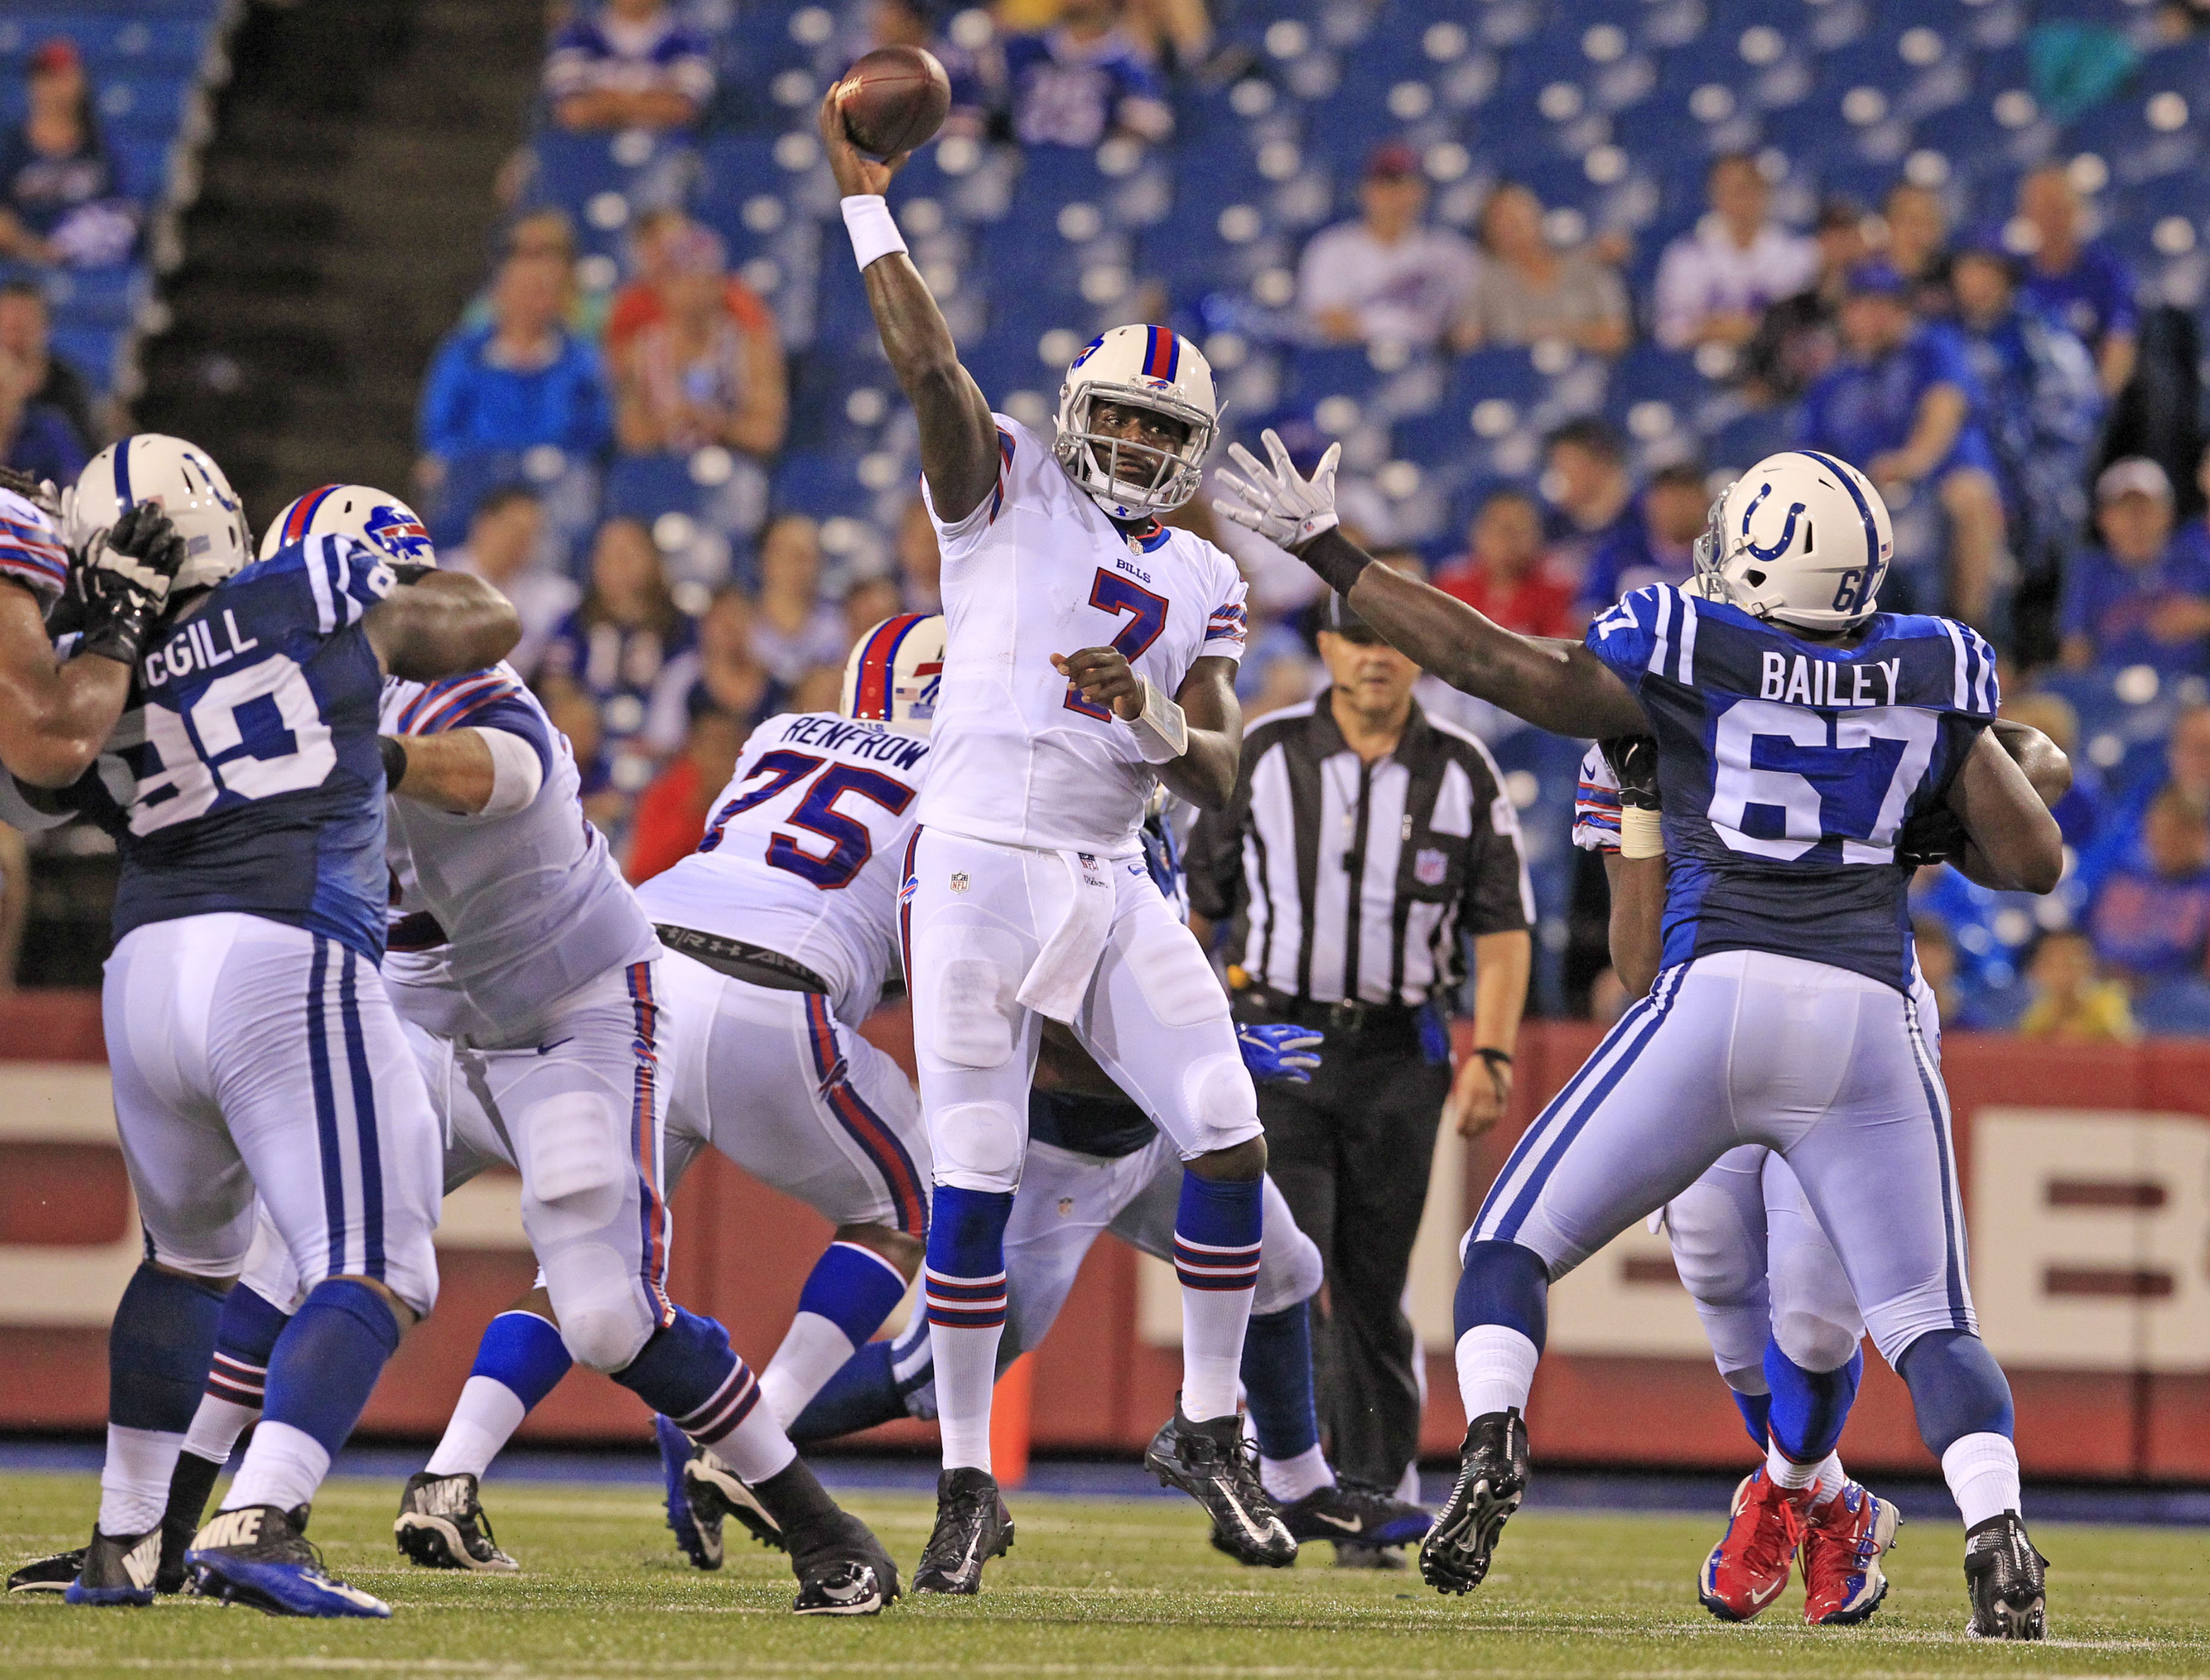 Buffalo Bills quarterback Cardale Jones has only seen playing time in the preseason to this point. (Harry Scull Jr./Buffalo News)